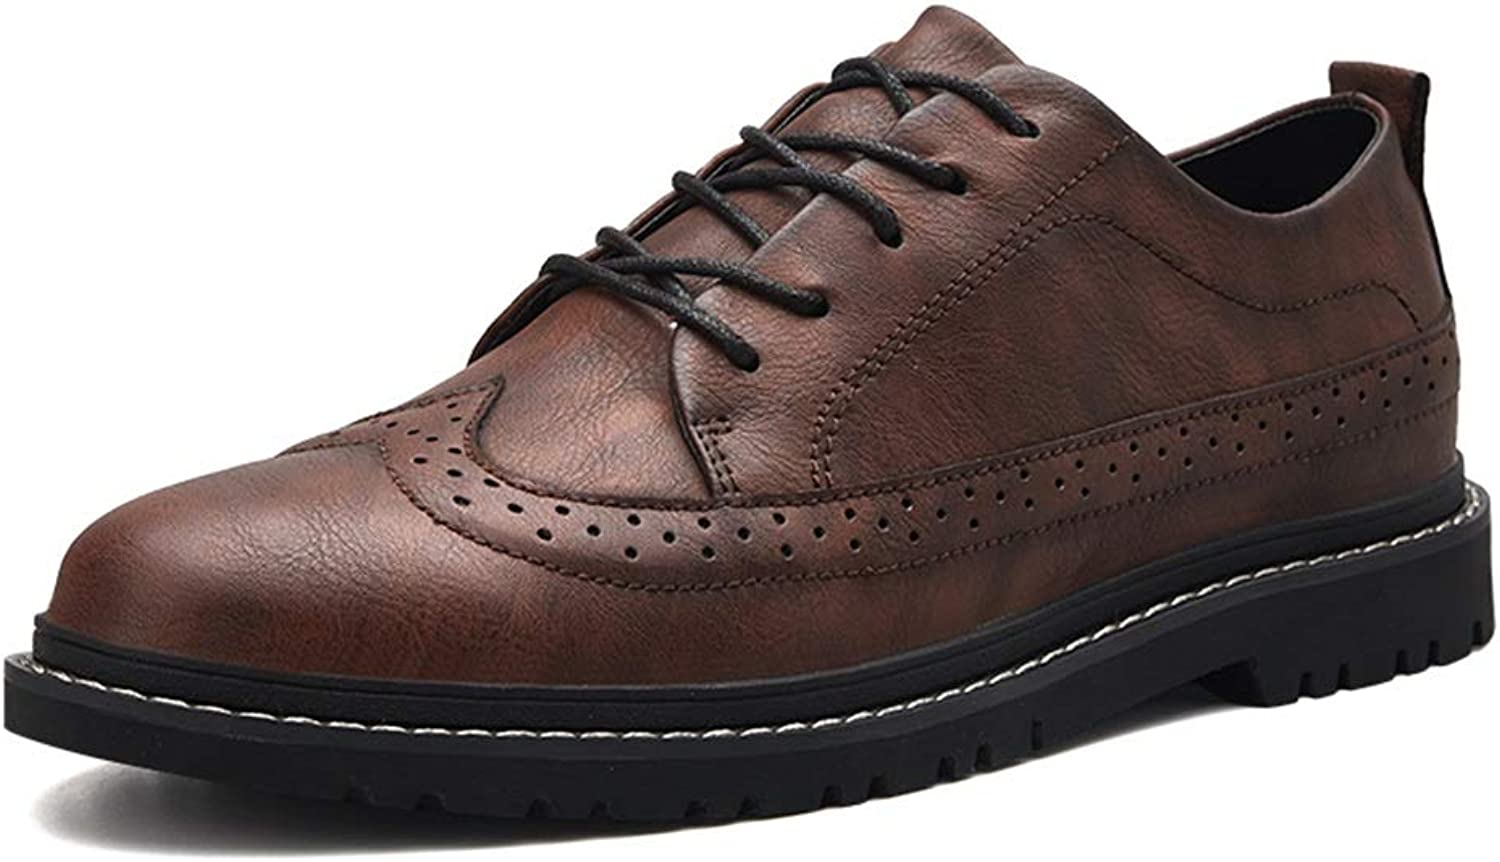 SCSY-Oxford shoes Men's Simple Fashion Oxford Casual Classic Carving Breathable British Style Brogue shoes